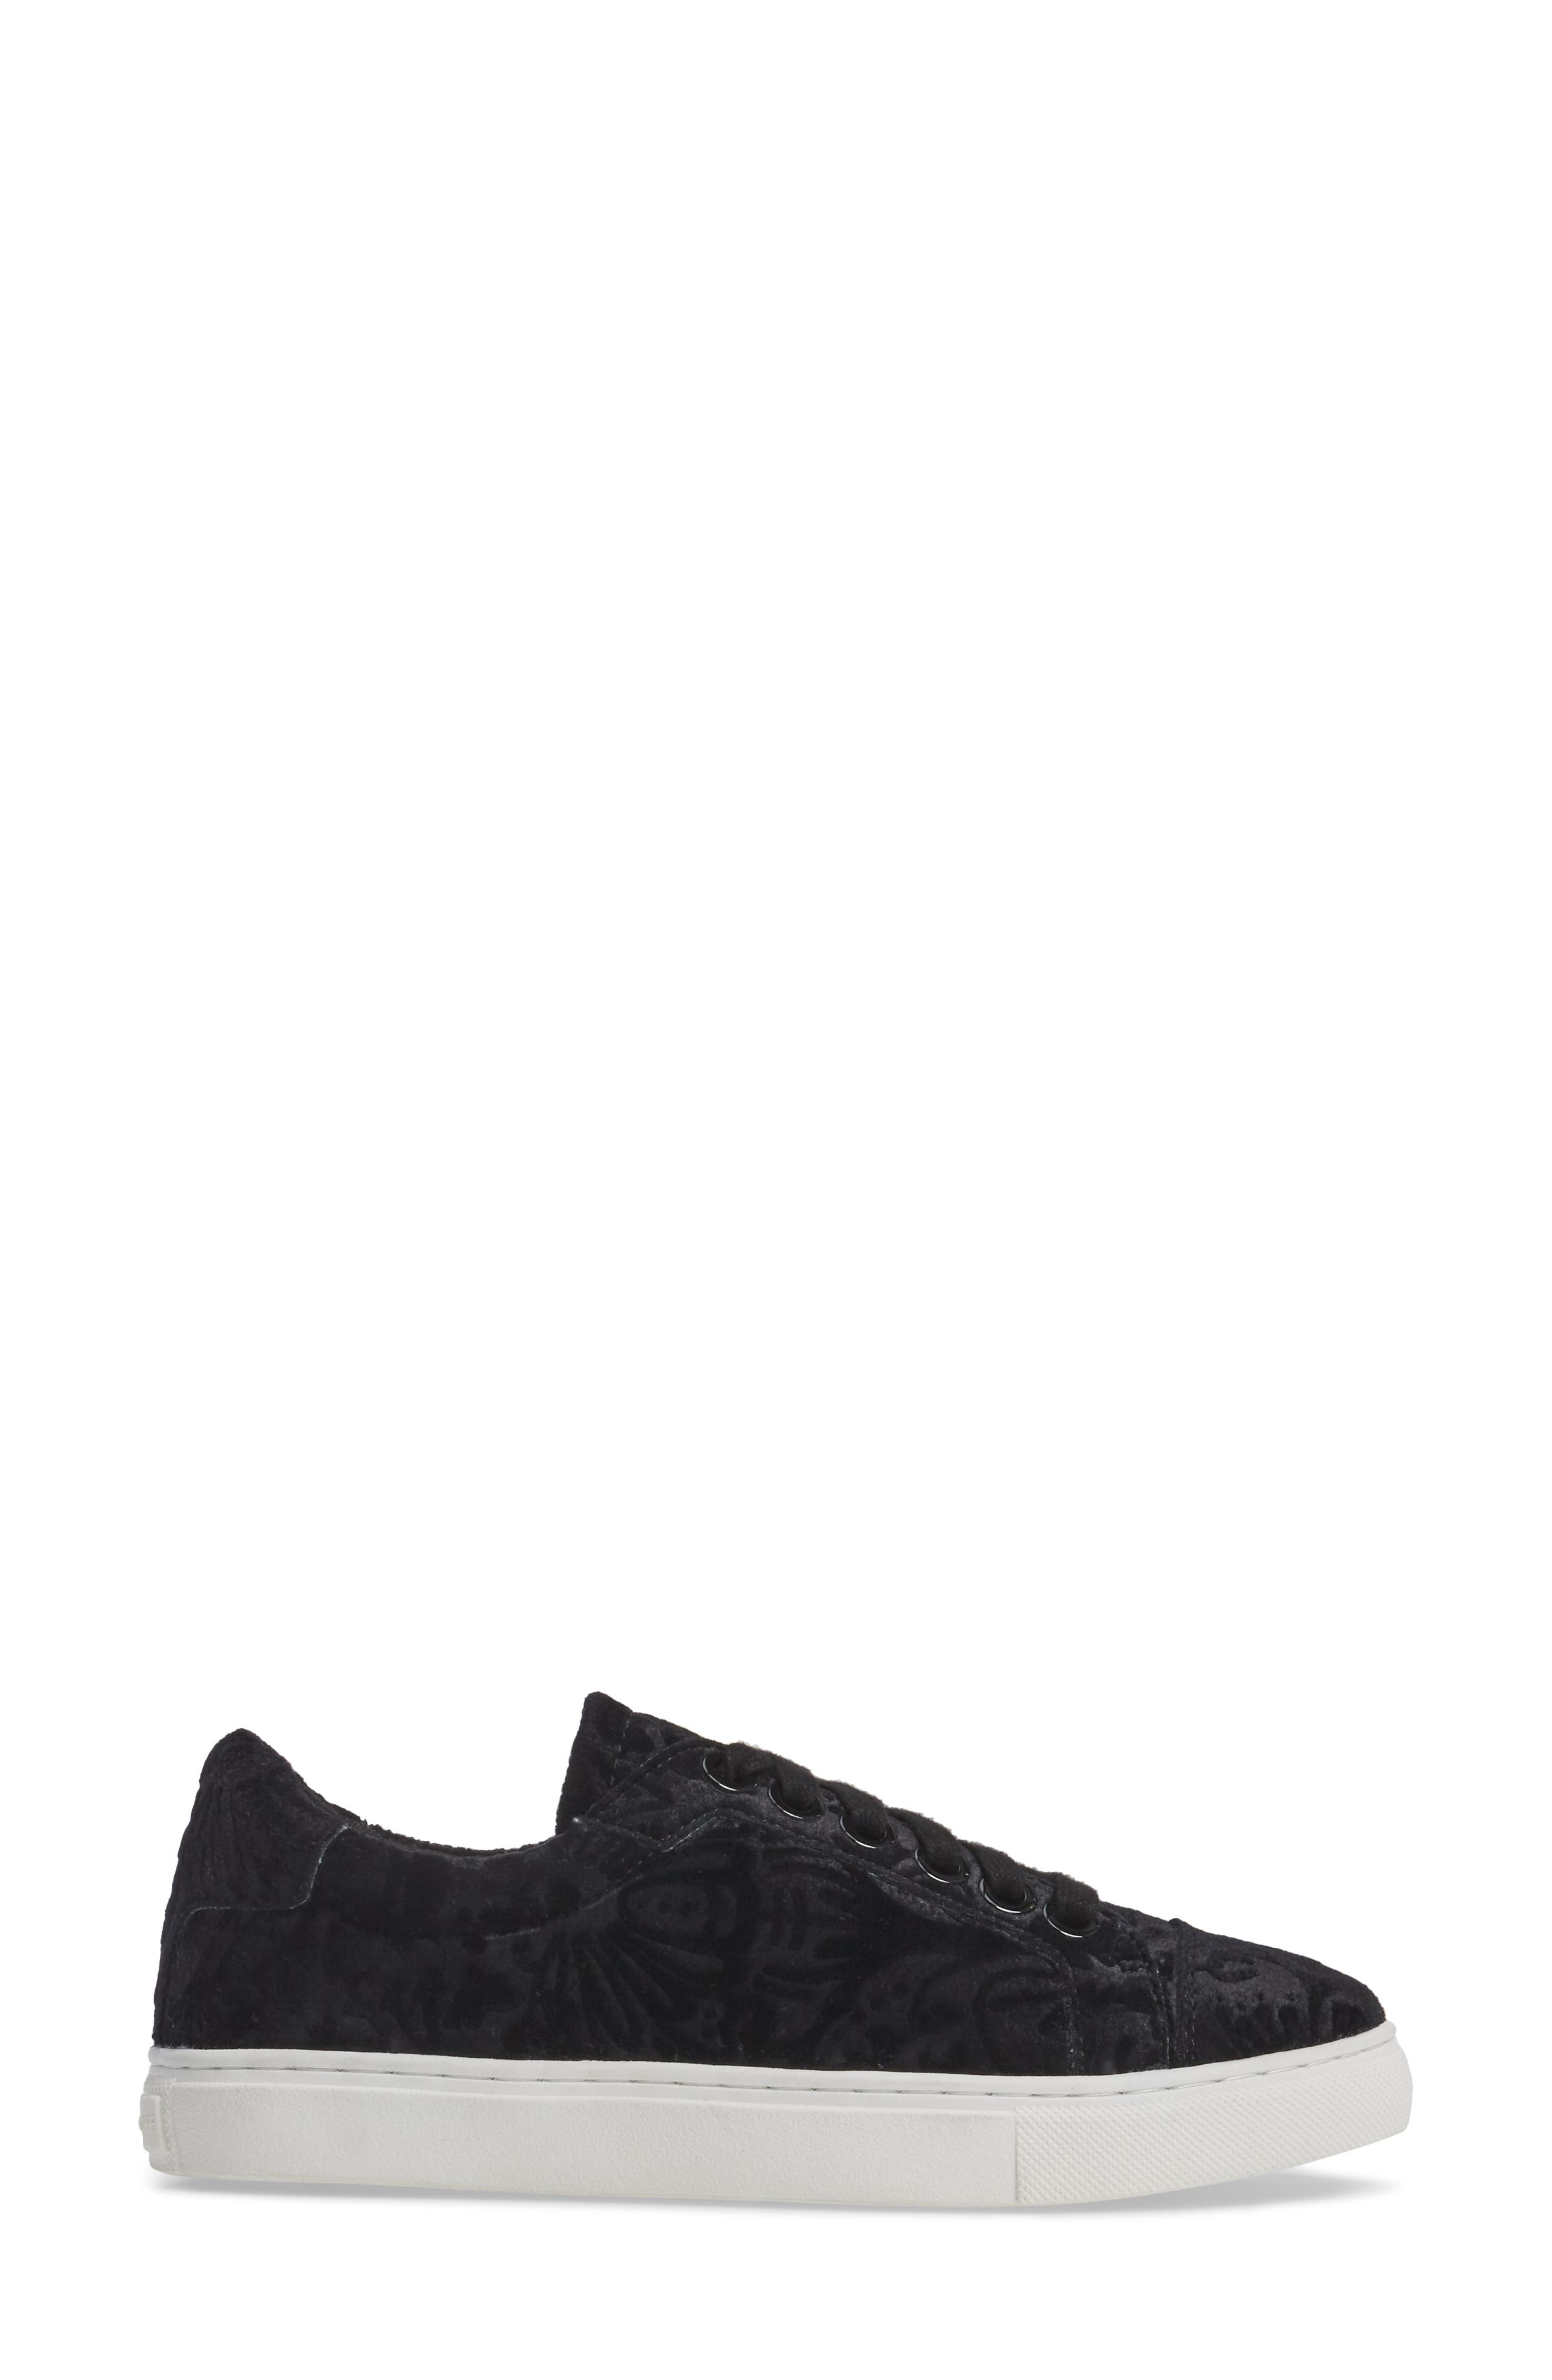 Bleecker Too Sneaker,                             Alternate thumbnail 3, color,                             Black Floral Velvet